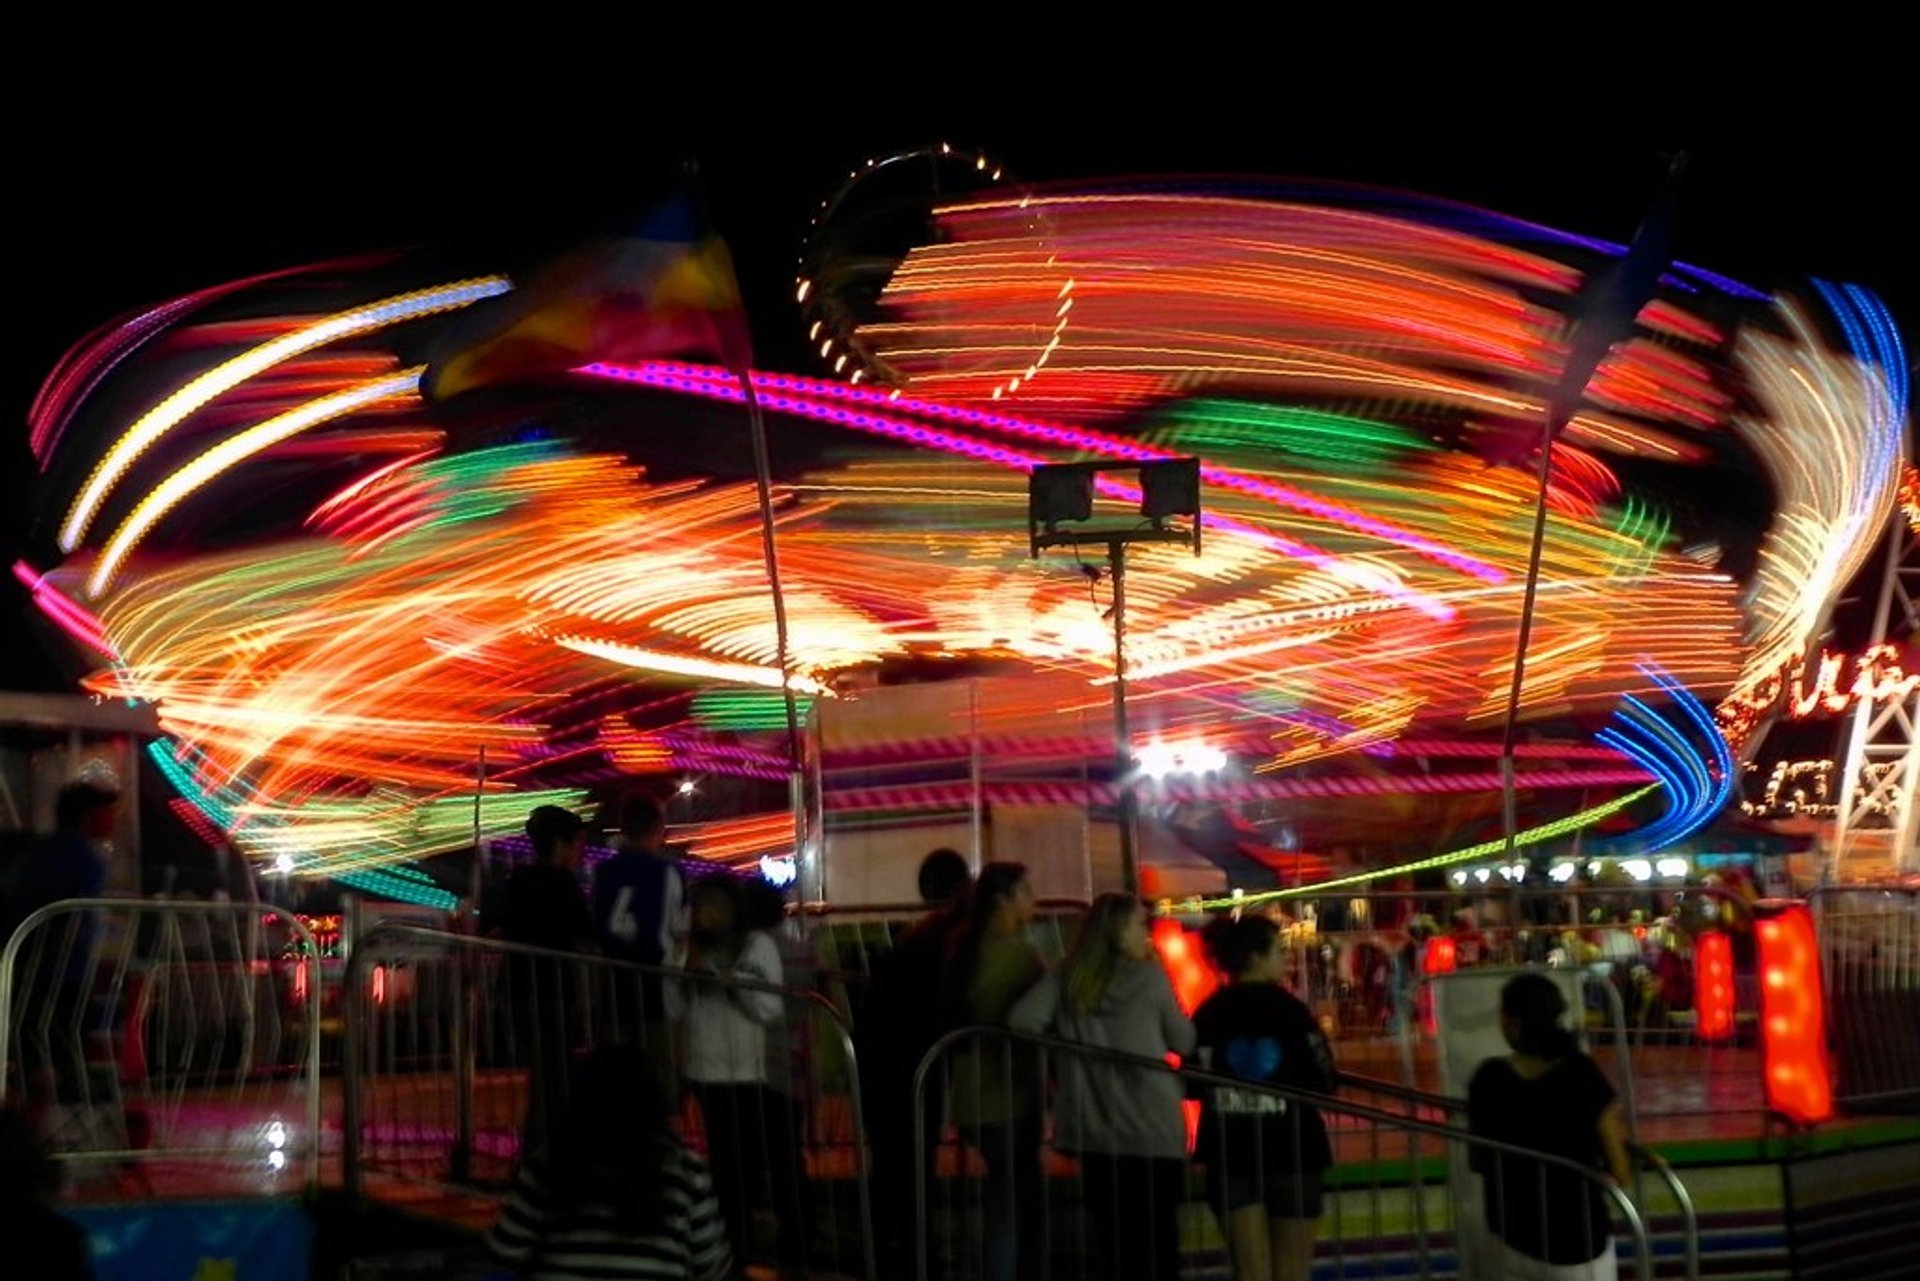 South Florida Fair 2021 - Dates & Map In South Florida Fair 2021